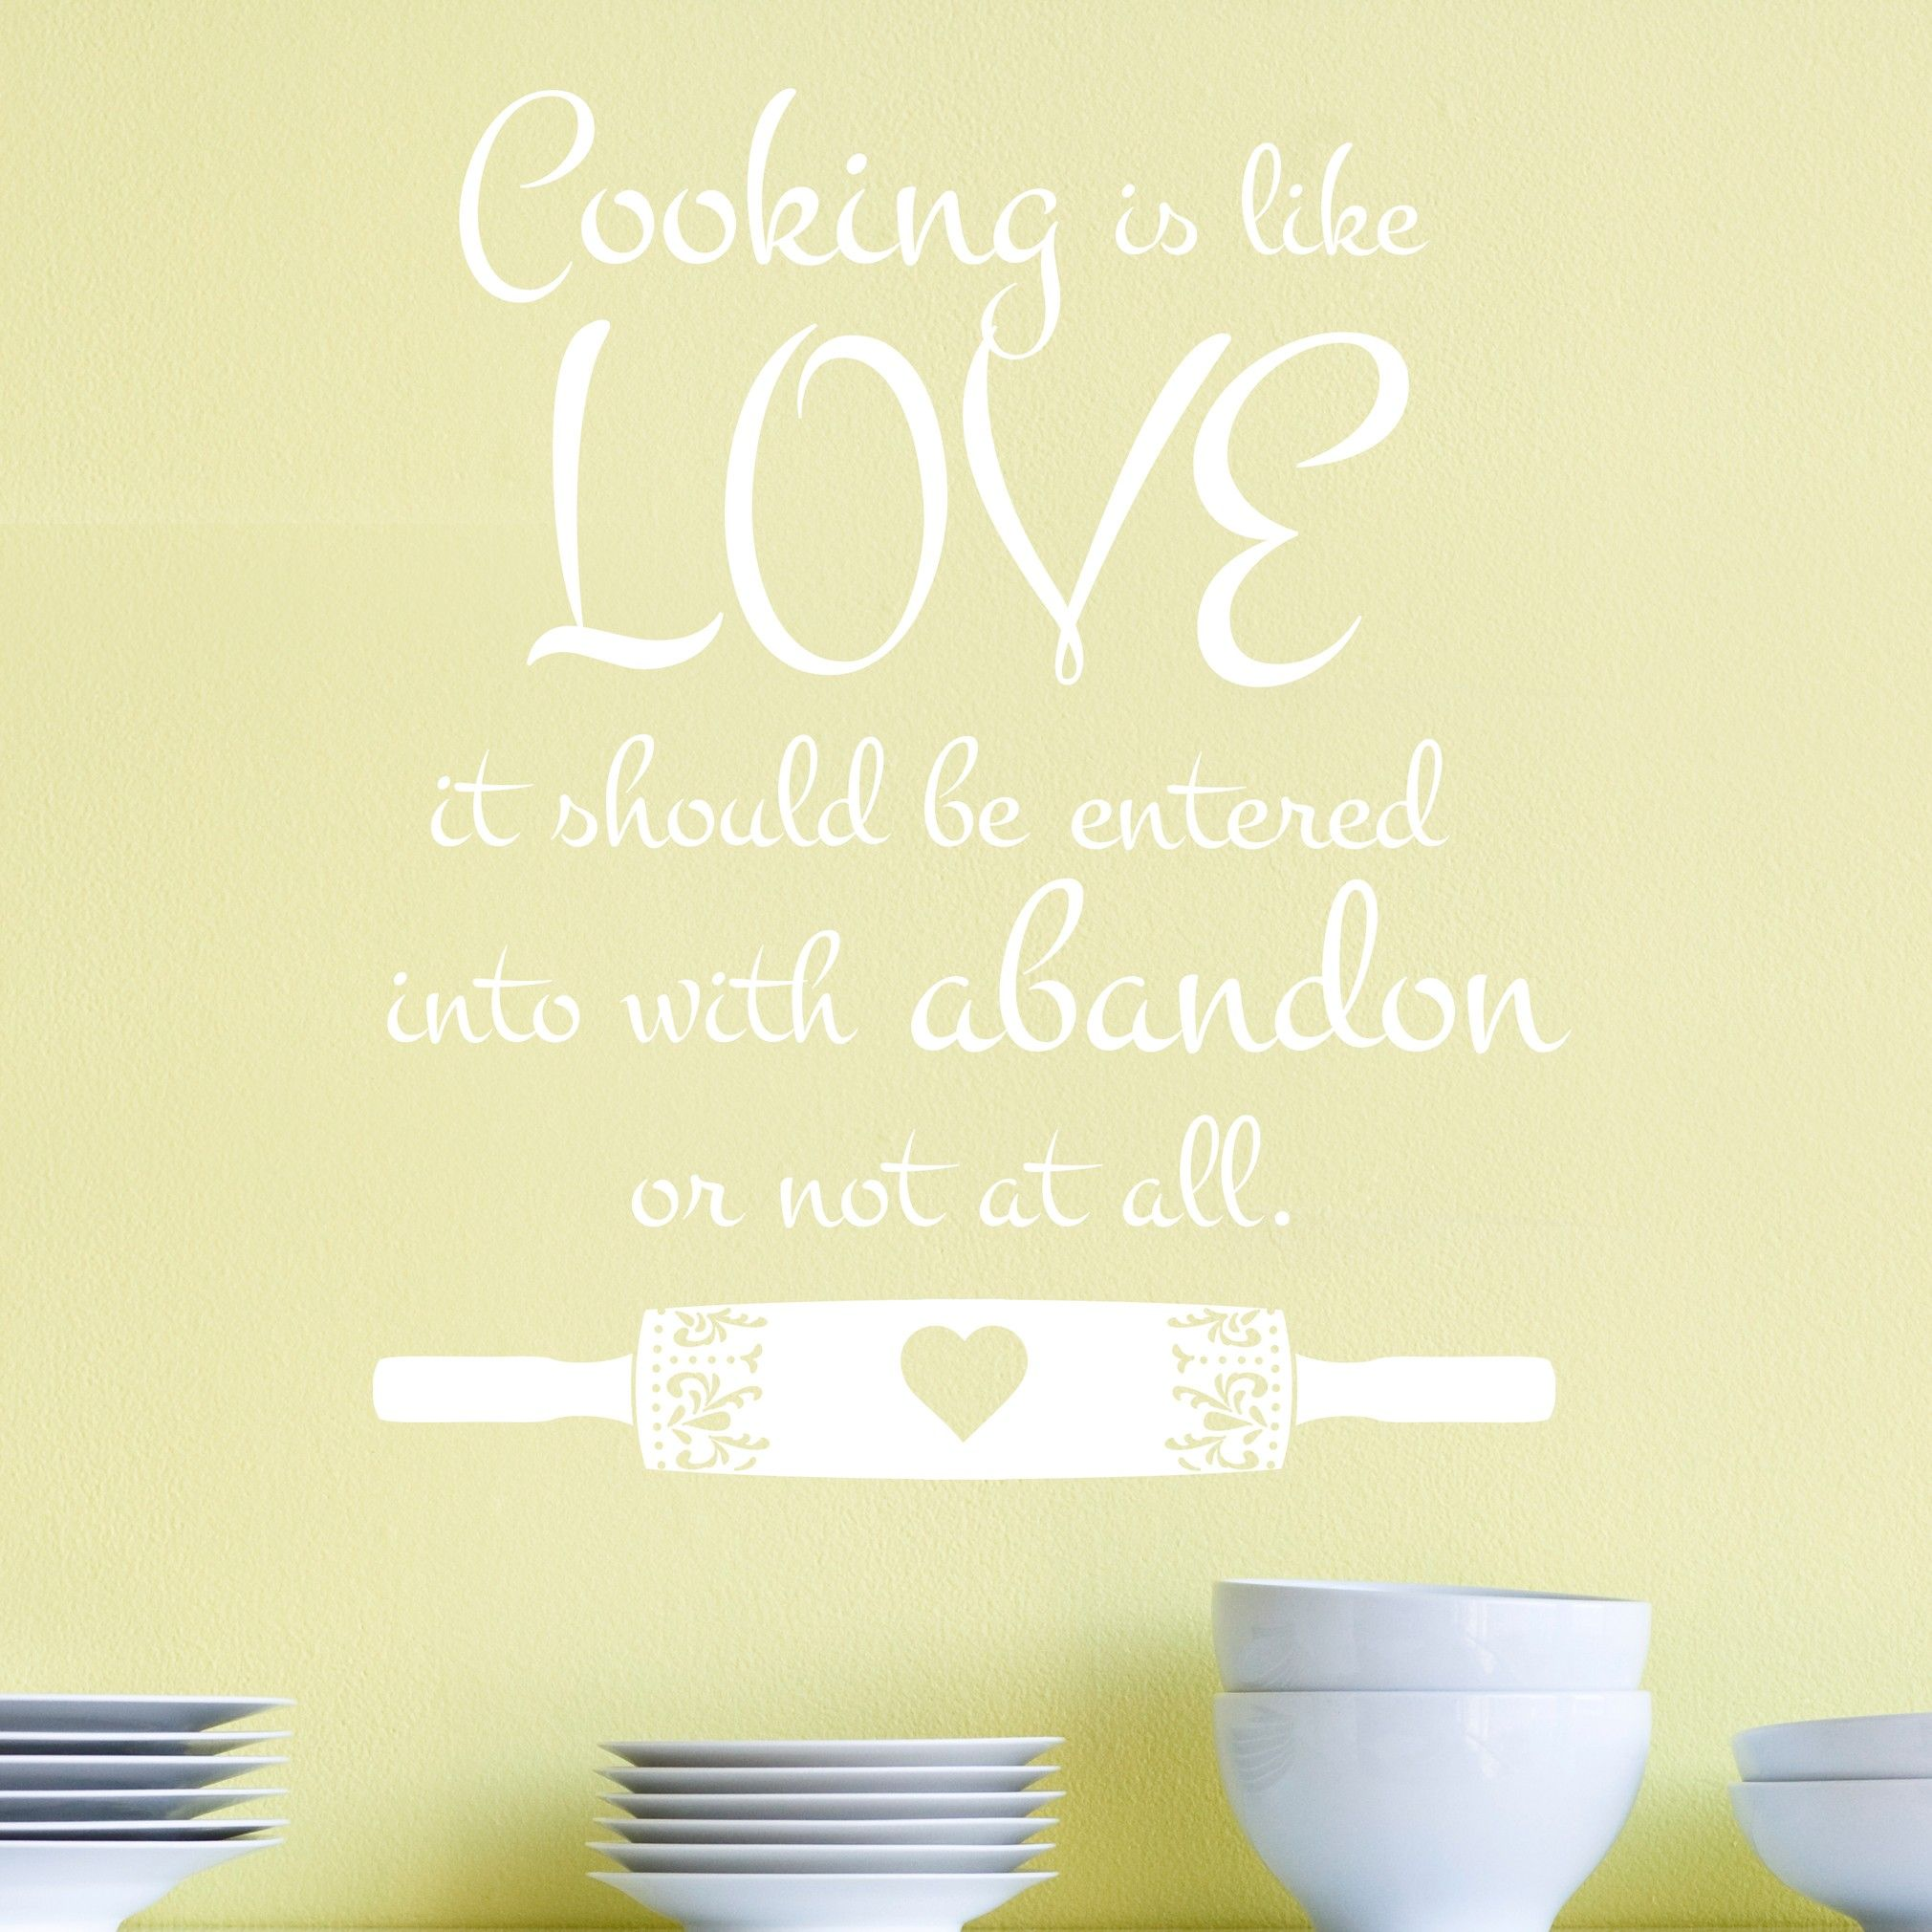 Cooking is like Love Julia Child Quote - Vinyl Wall Art Decal for ...